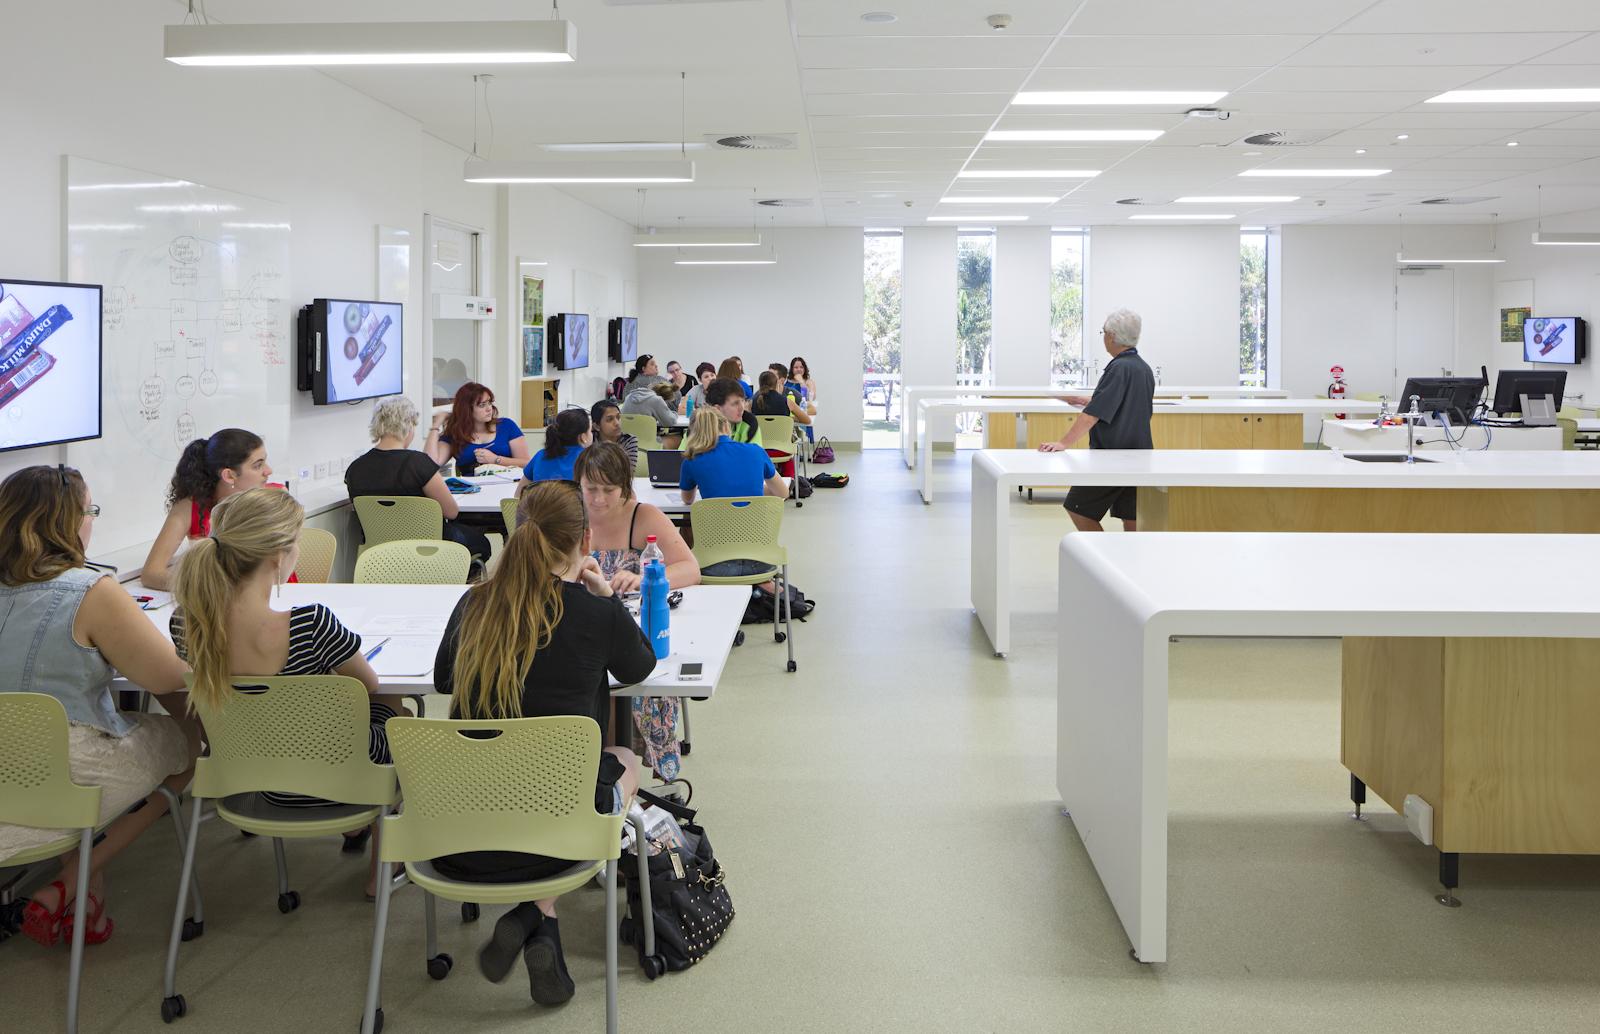 The Wet Active Learning Space